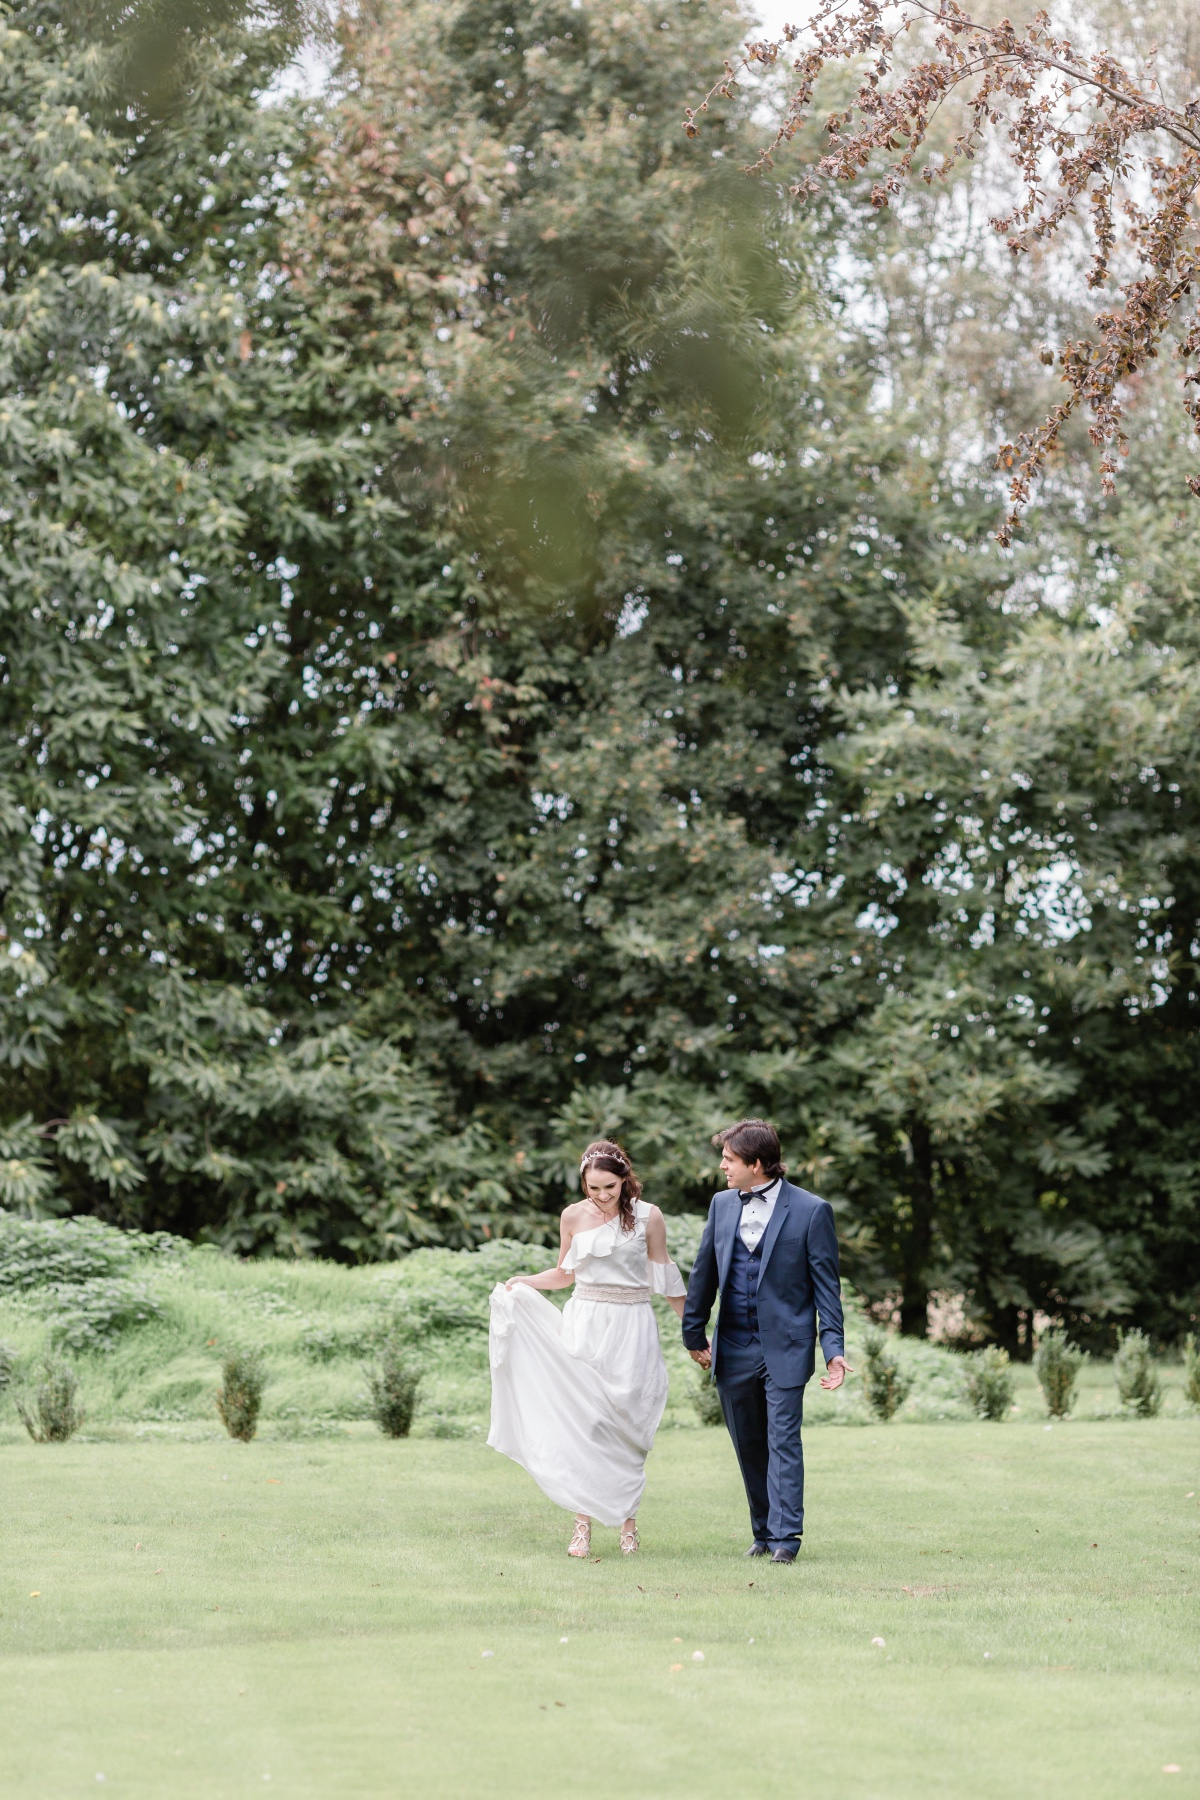 Classic wedding ideas at Kingsdown Rectory